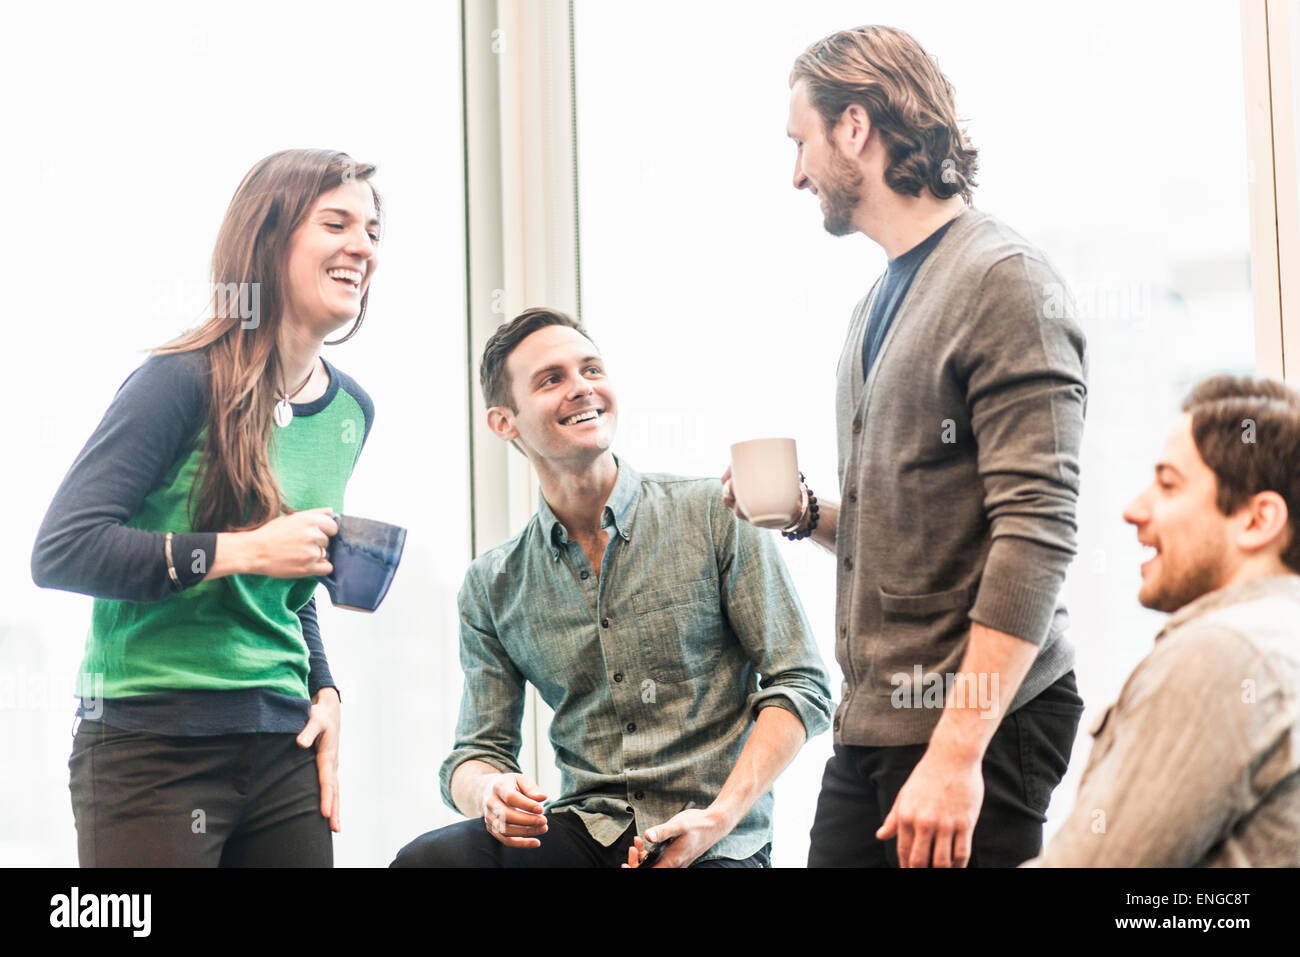 Four work colleagues on a break, laughing together. - Stock Image